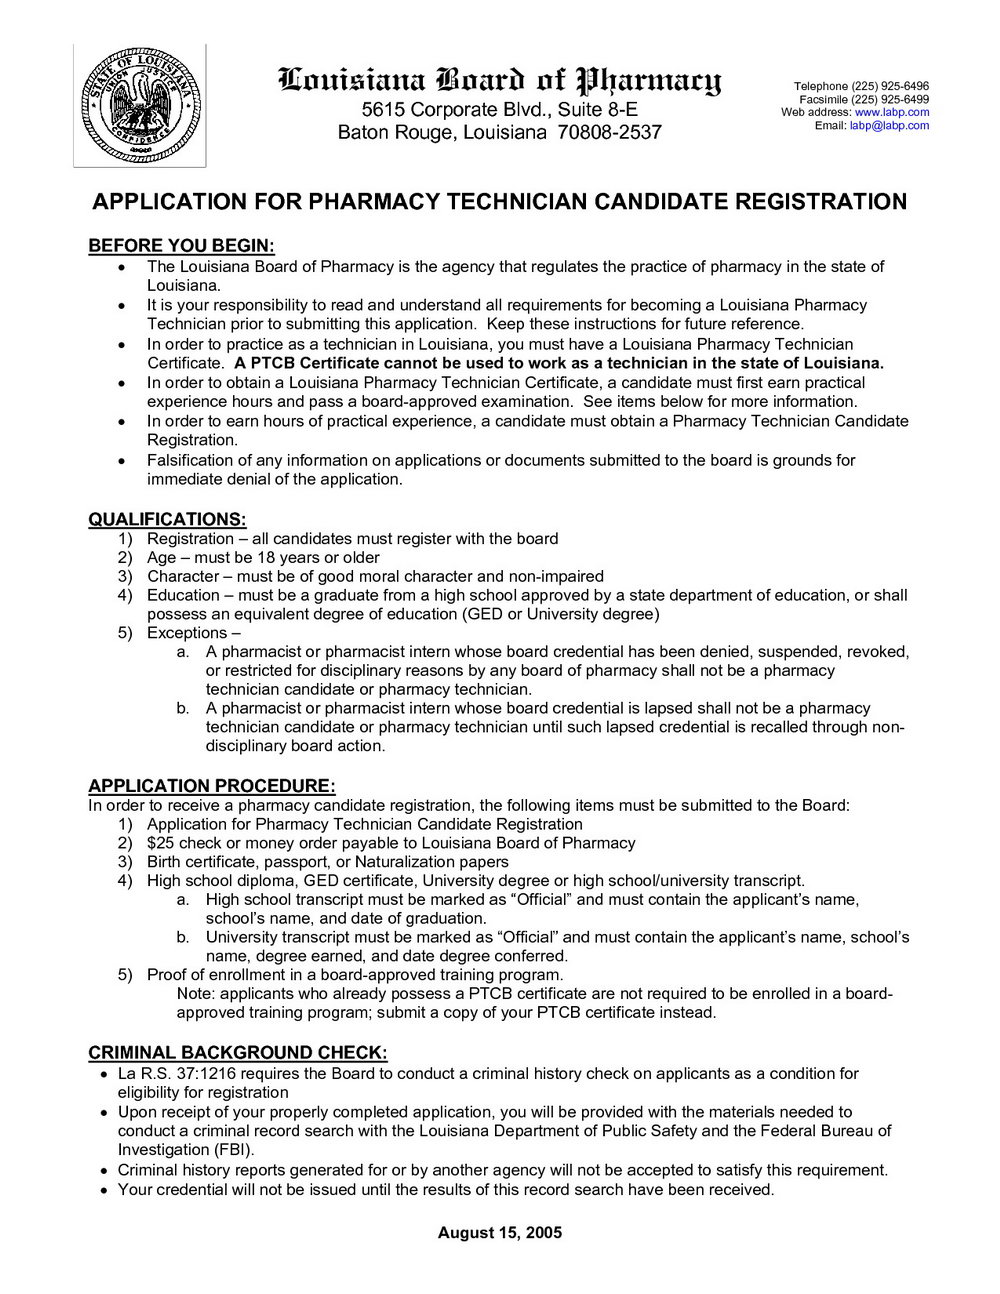 Certified Pharmacy Technician Resume Sample